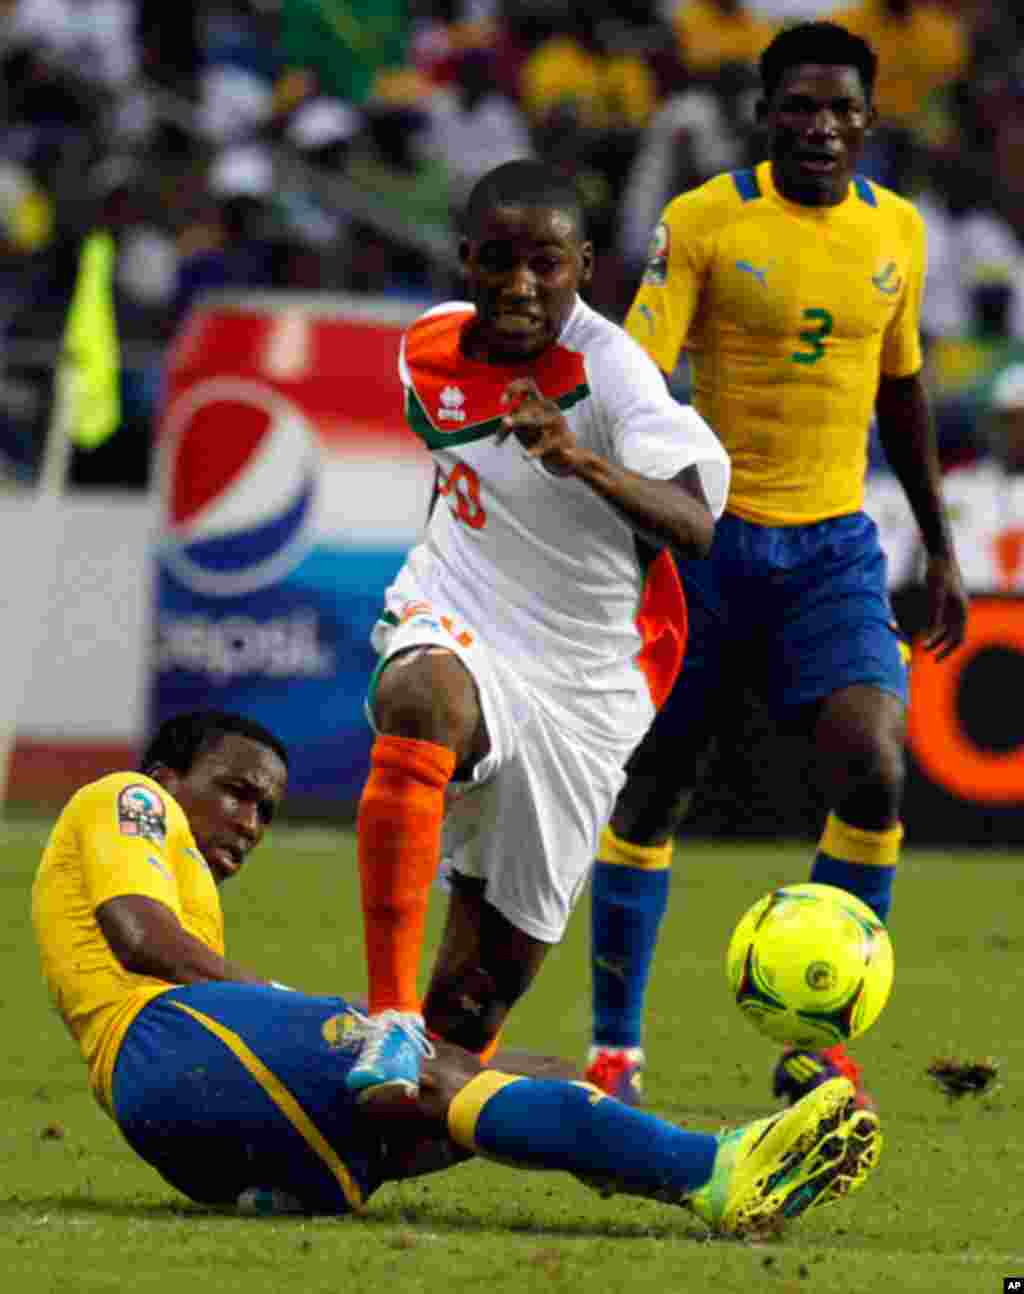 Niger'a Mountari is tackled by Gabon's Ondo during their African Cup of Nations soccer match in Libreville